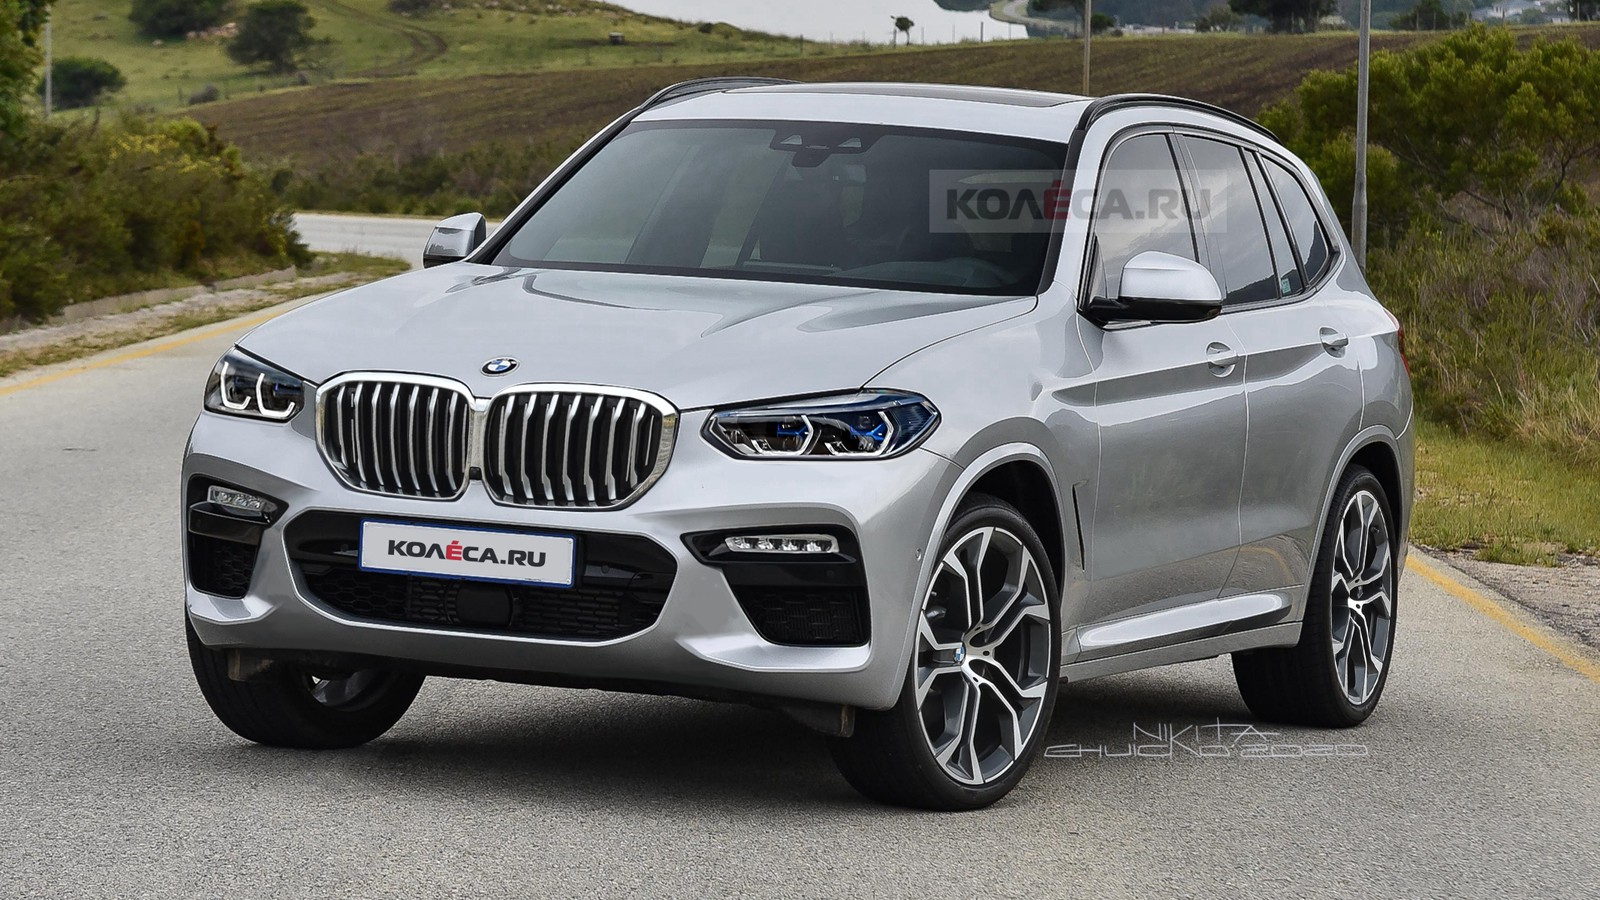 Updated 2022 BMW X3 Imagined, Looks Like a Slightly Smaller ...